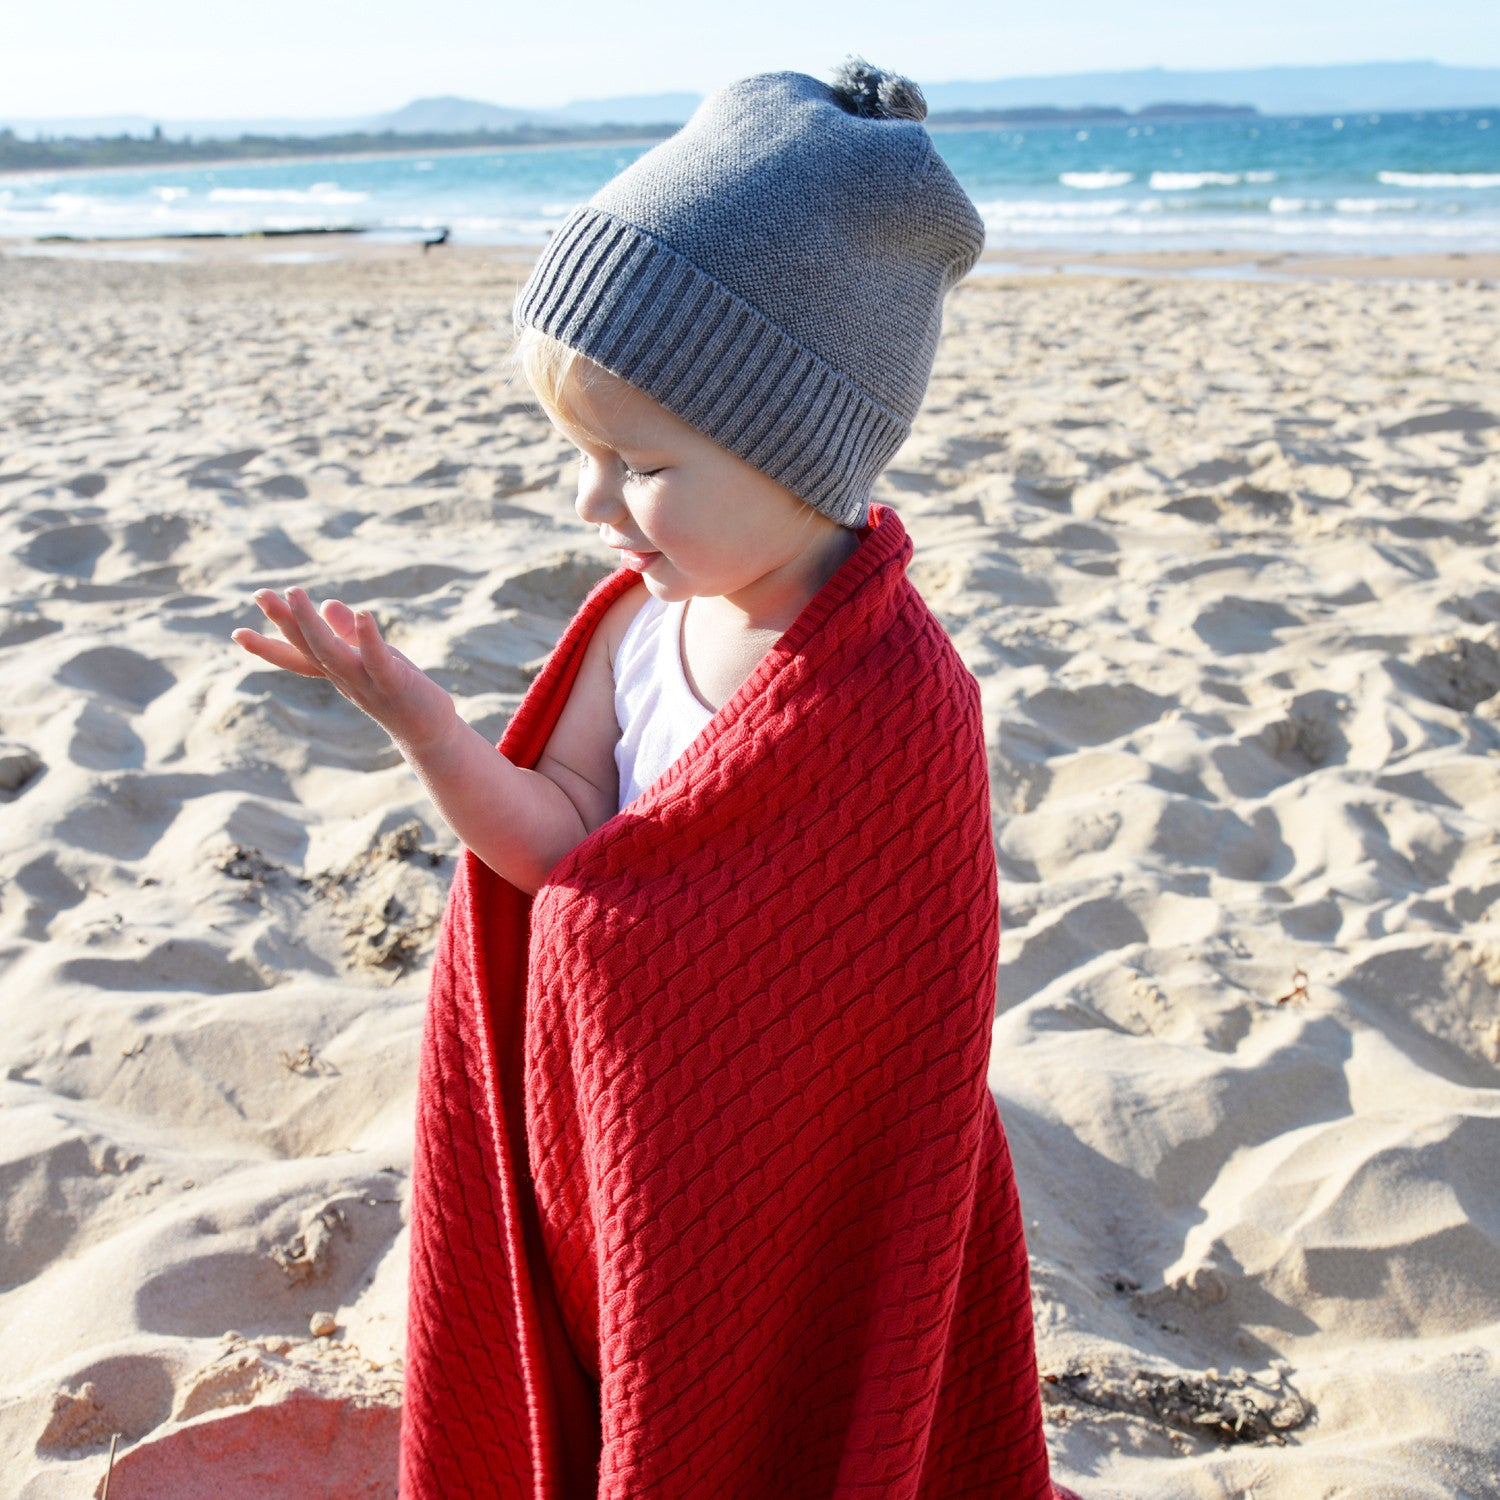 girl on beach with red knit baby blanket